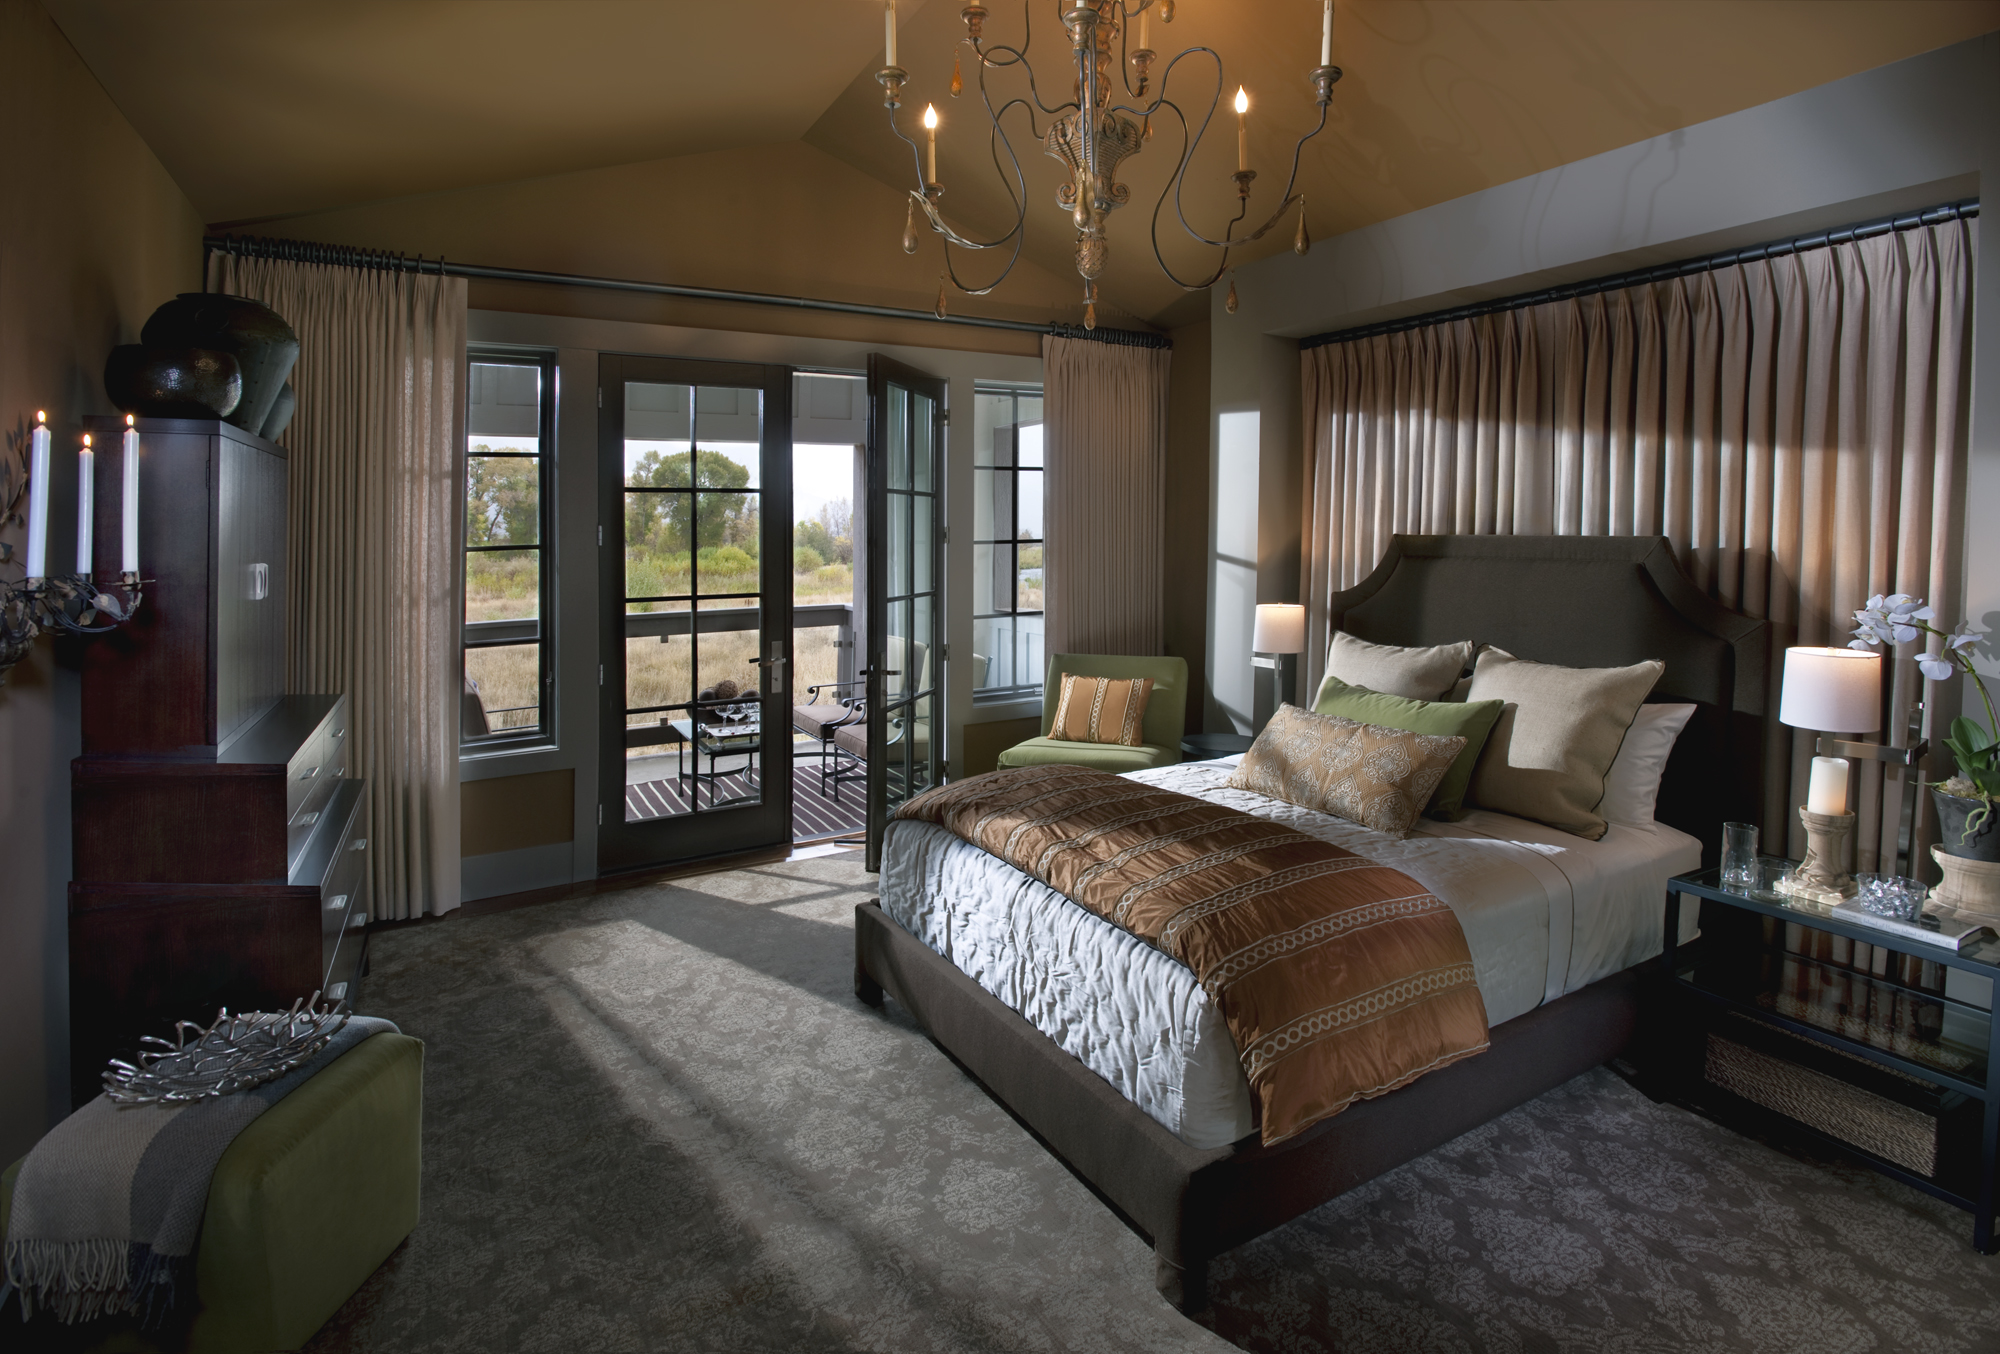 The HGTV Dream Home 2012 Giveaway winner was announced on Saturday